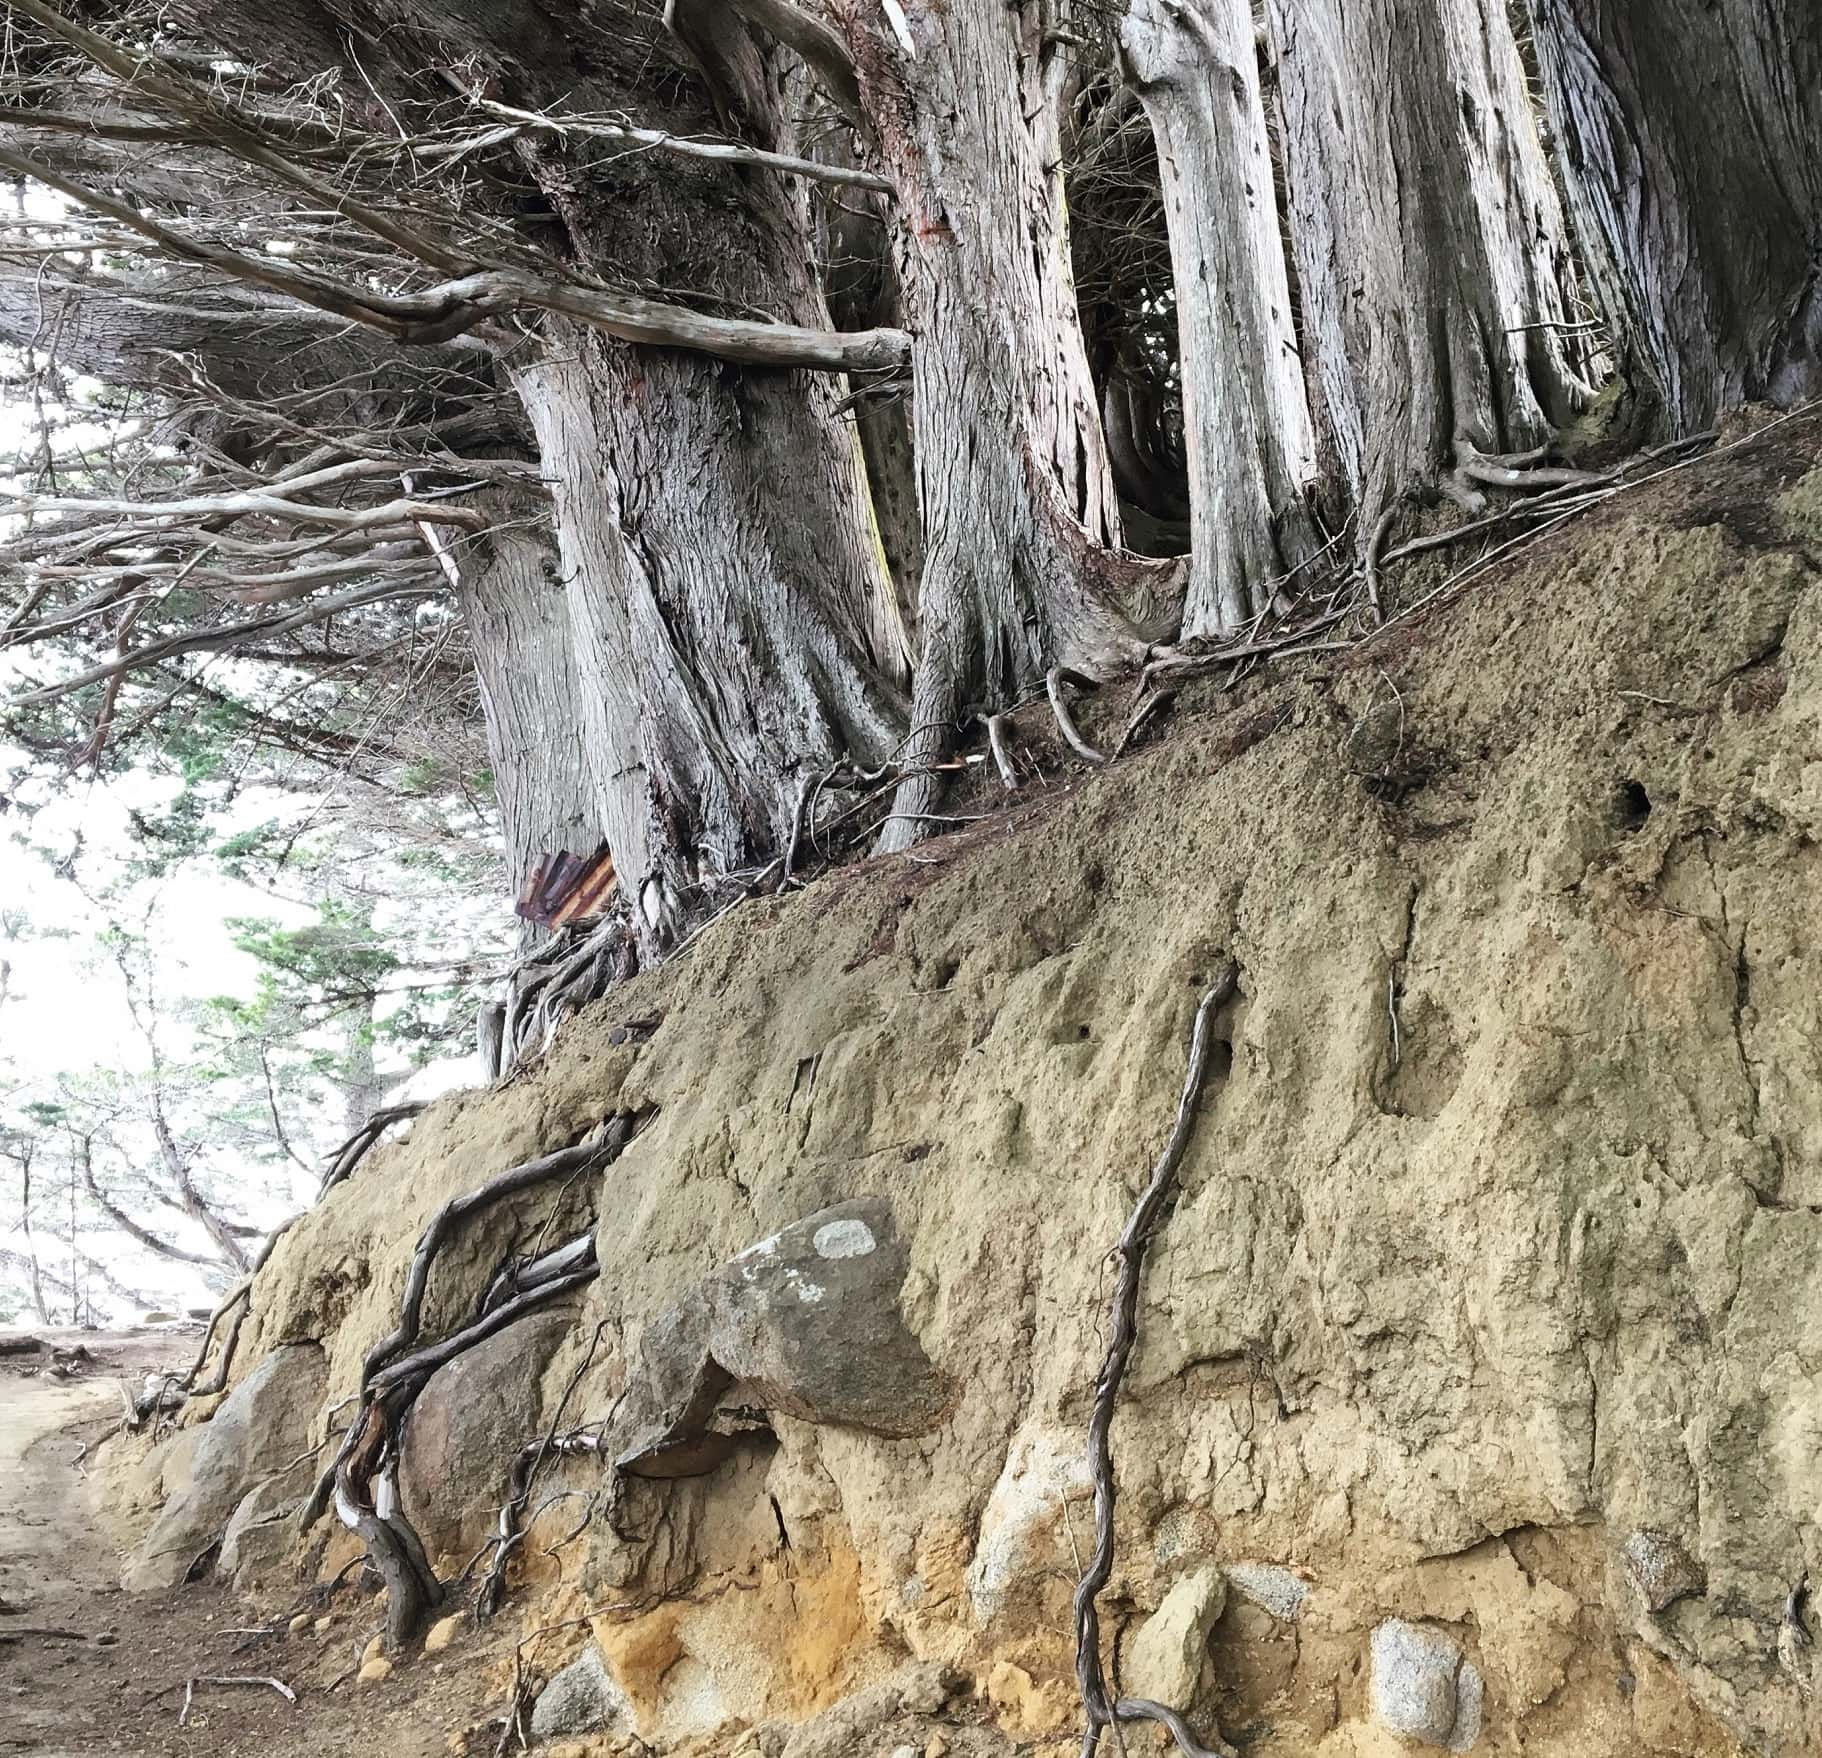 """Photograph of tree roots featured in Simone Weil's """"The Need for Roots"""" in the Examined Life Library."""